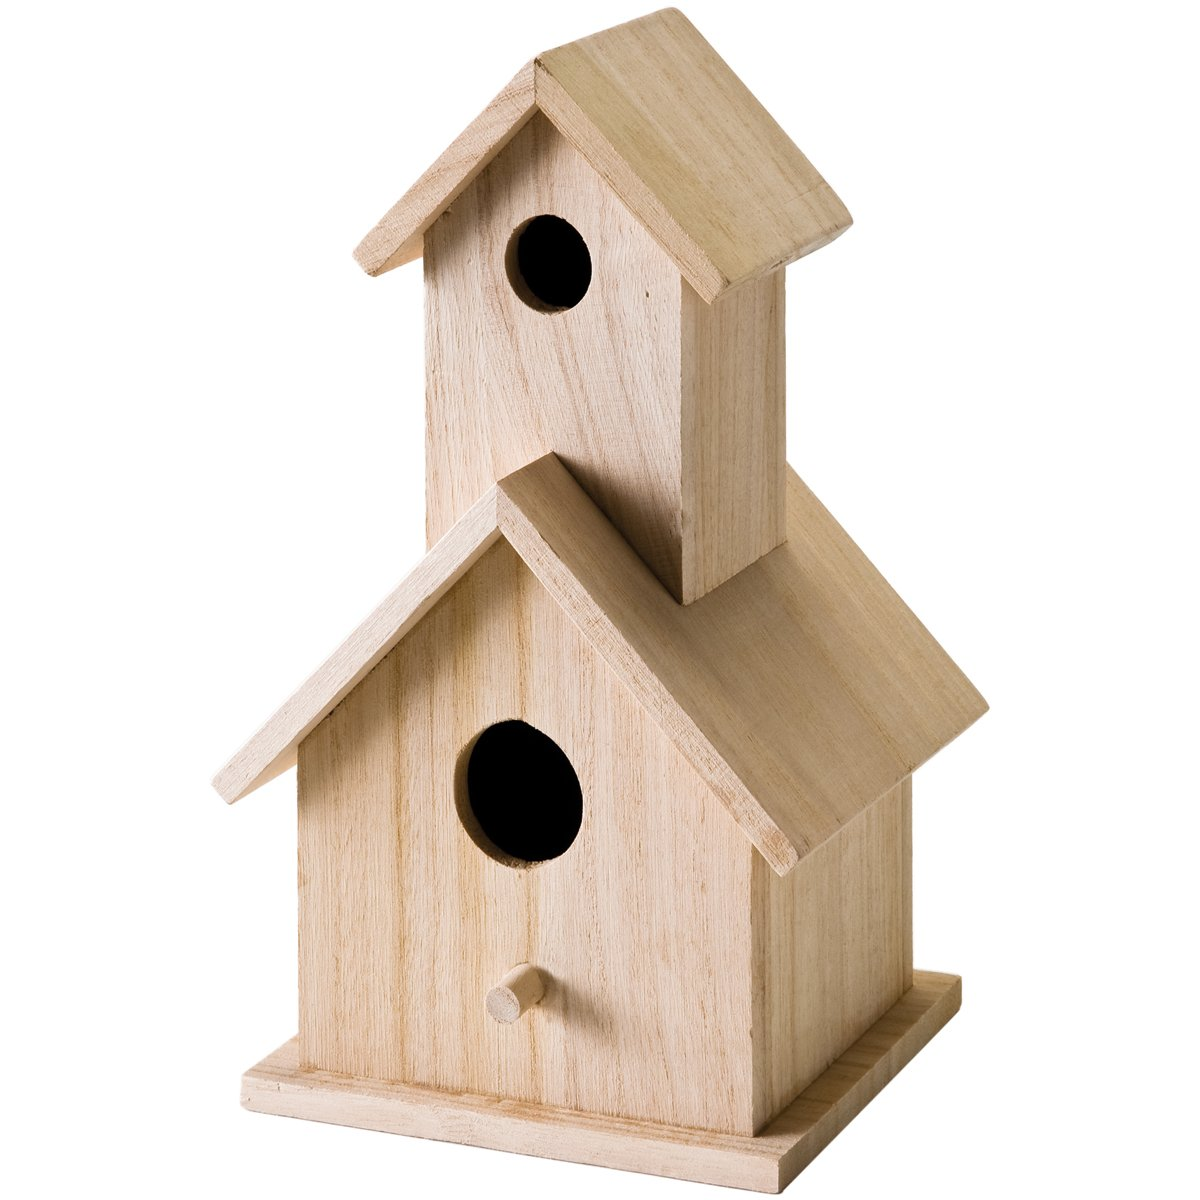 Plaid Wood Surface Crafting Birdhouse, 12741 Story